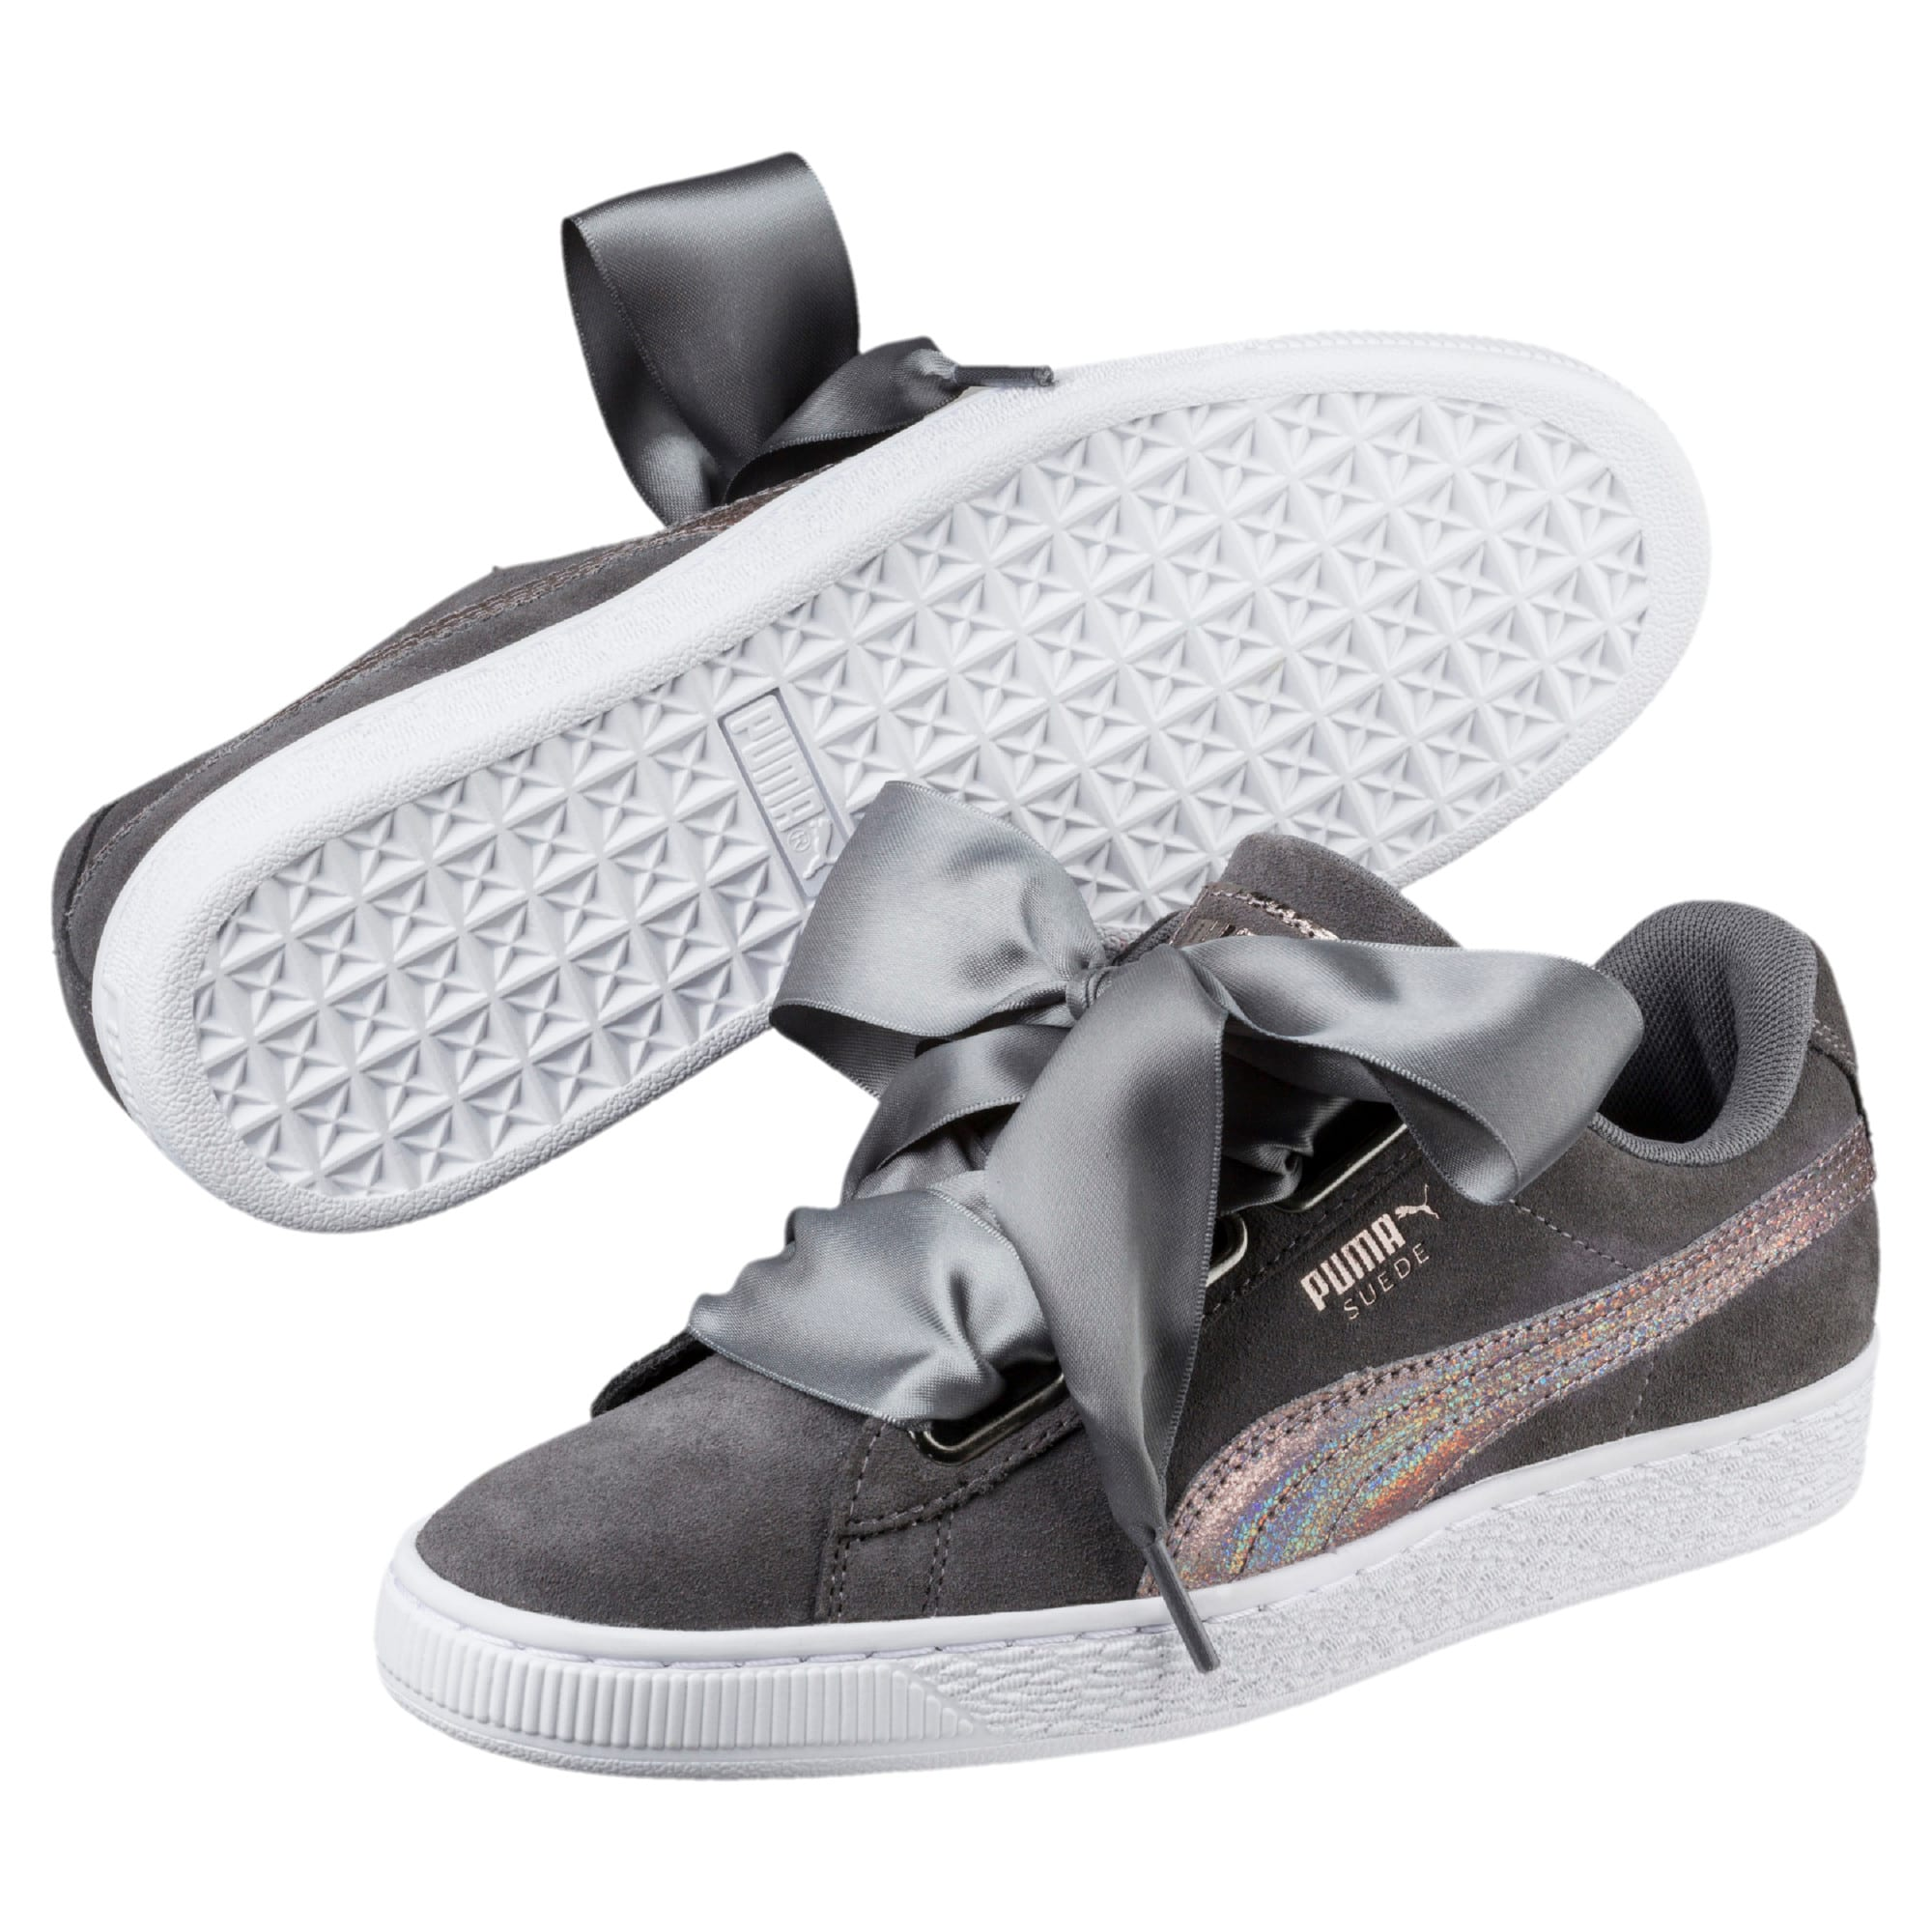 Thumbnail 2 of Suede Heart LunaLux Women's Trainers, Smoked Pearl, medium-IND